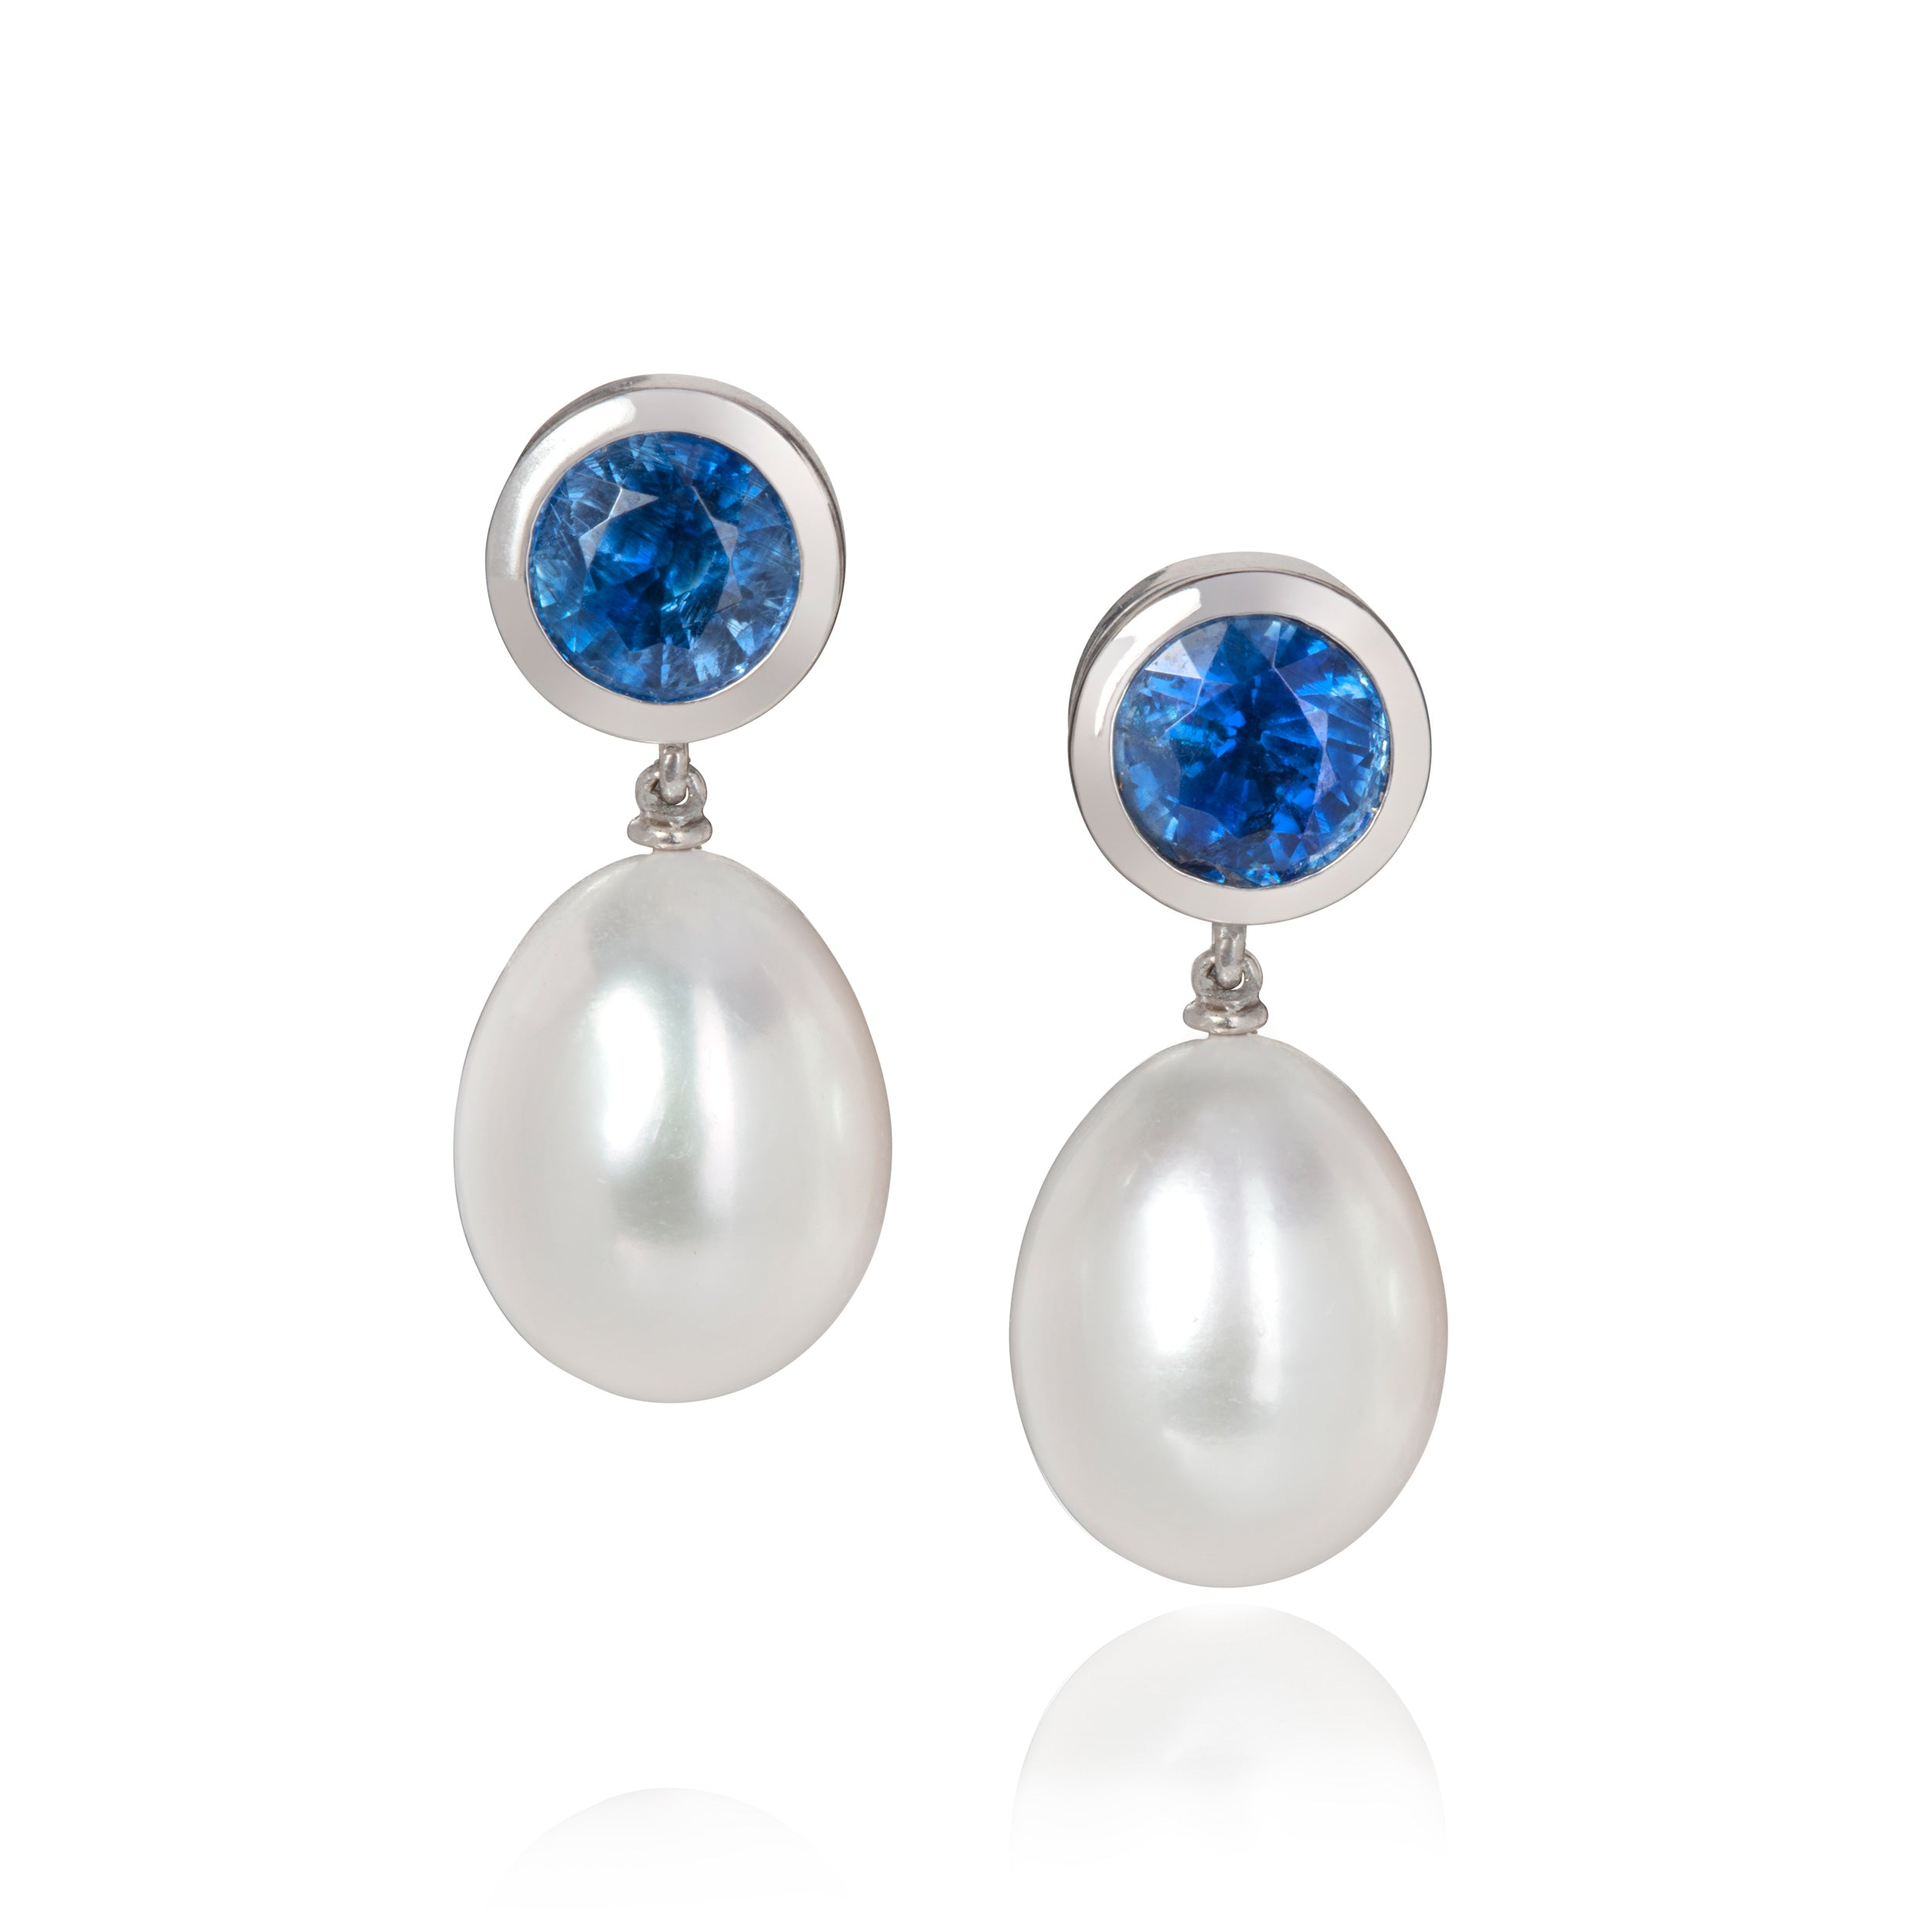 Drop earrings with tanzanite studs set in white gold, with pearl drops